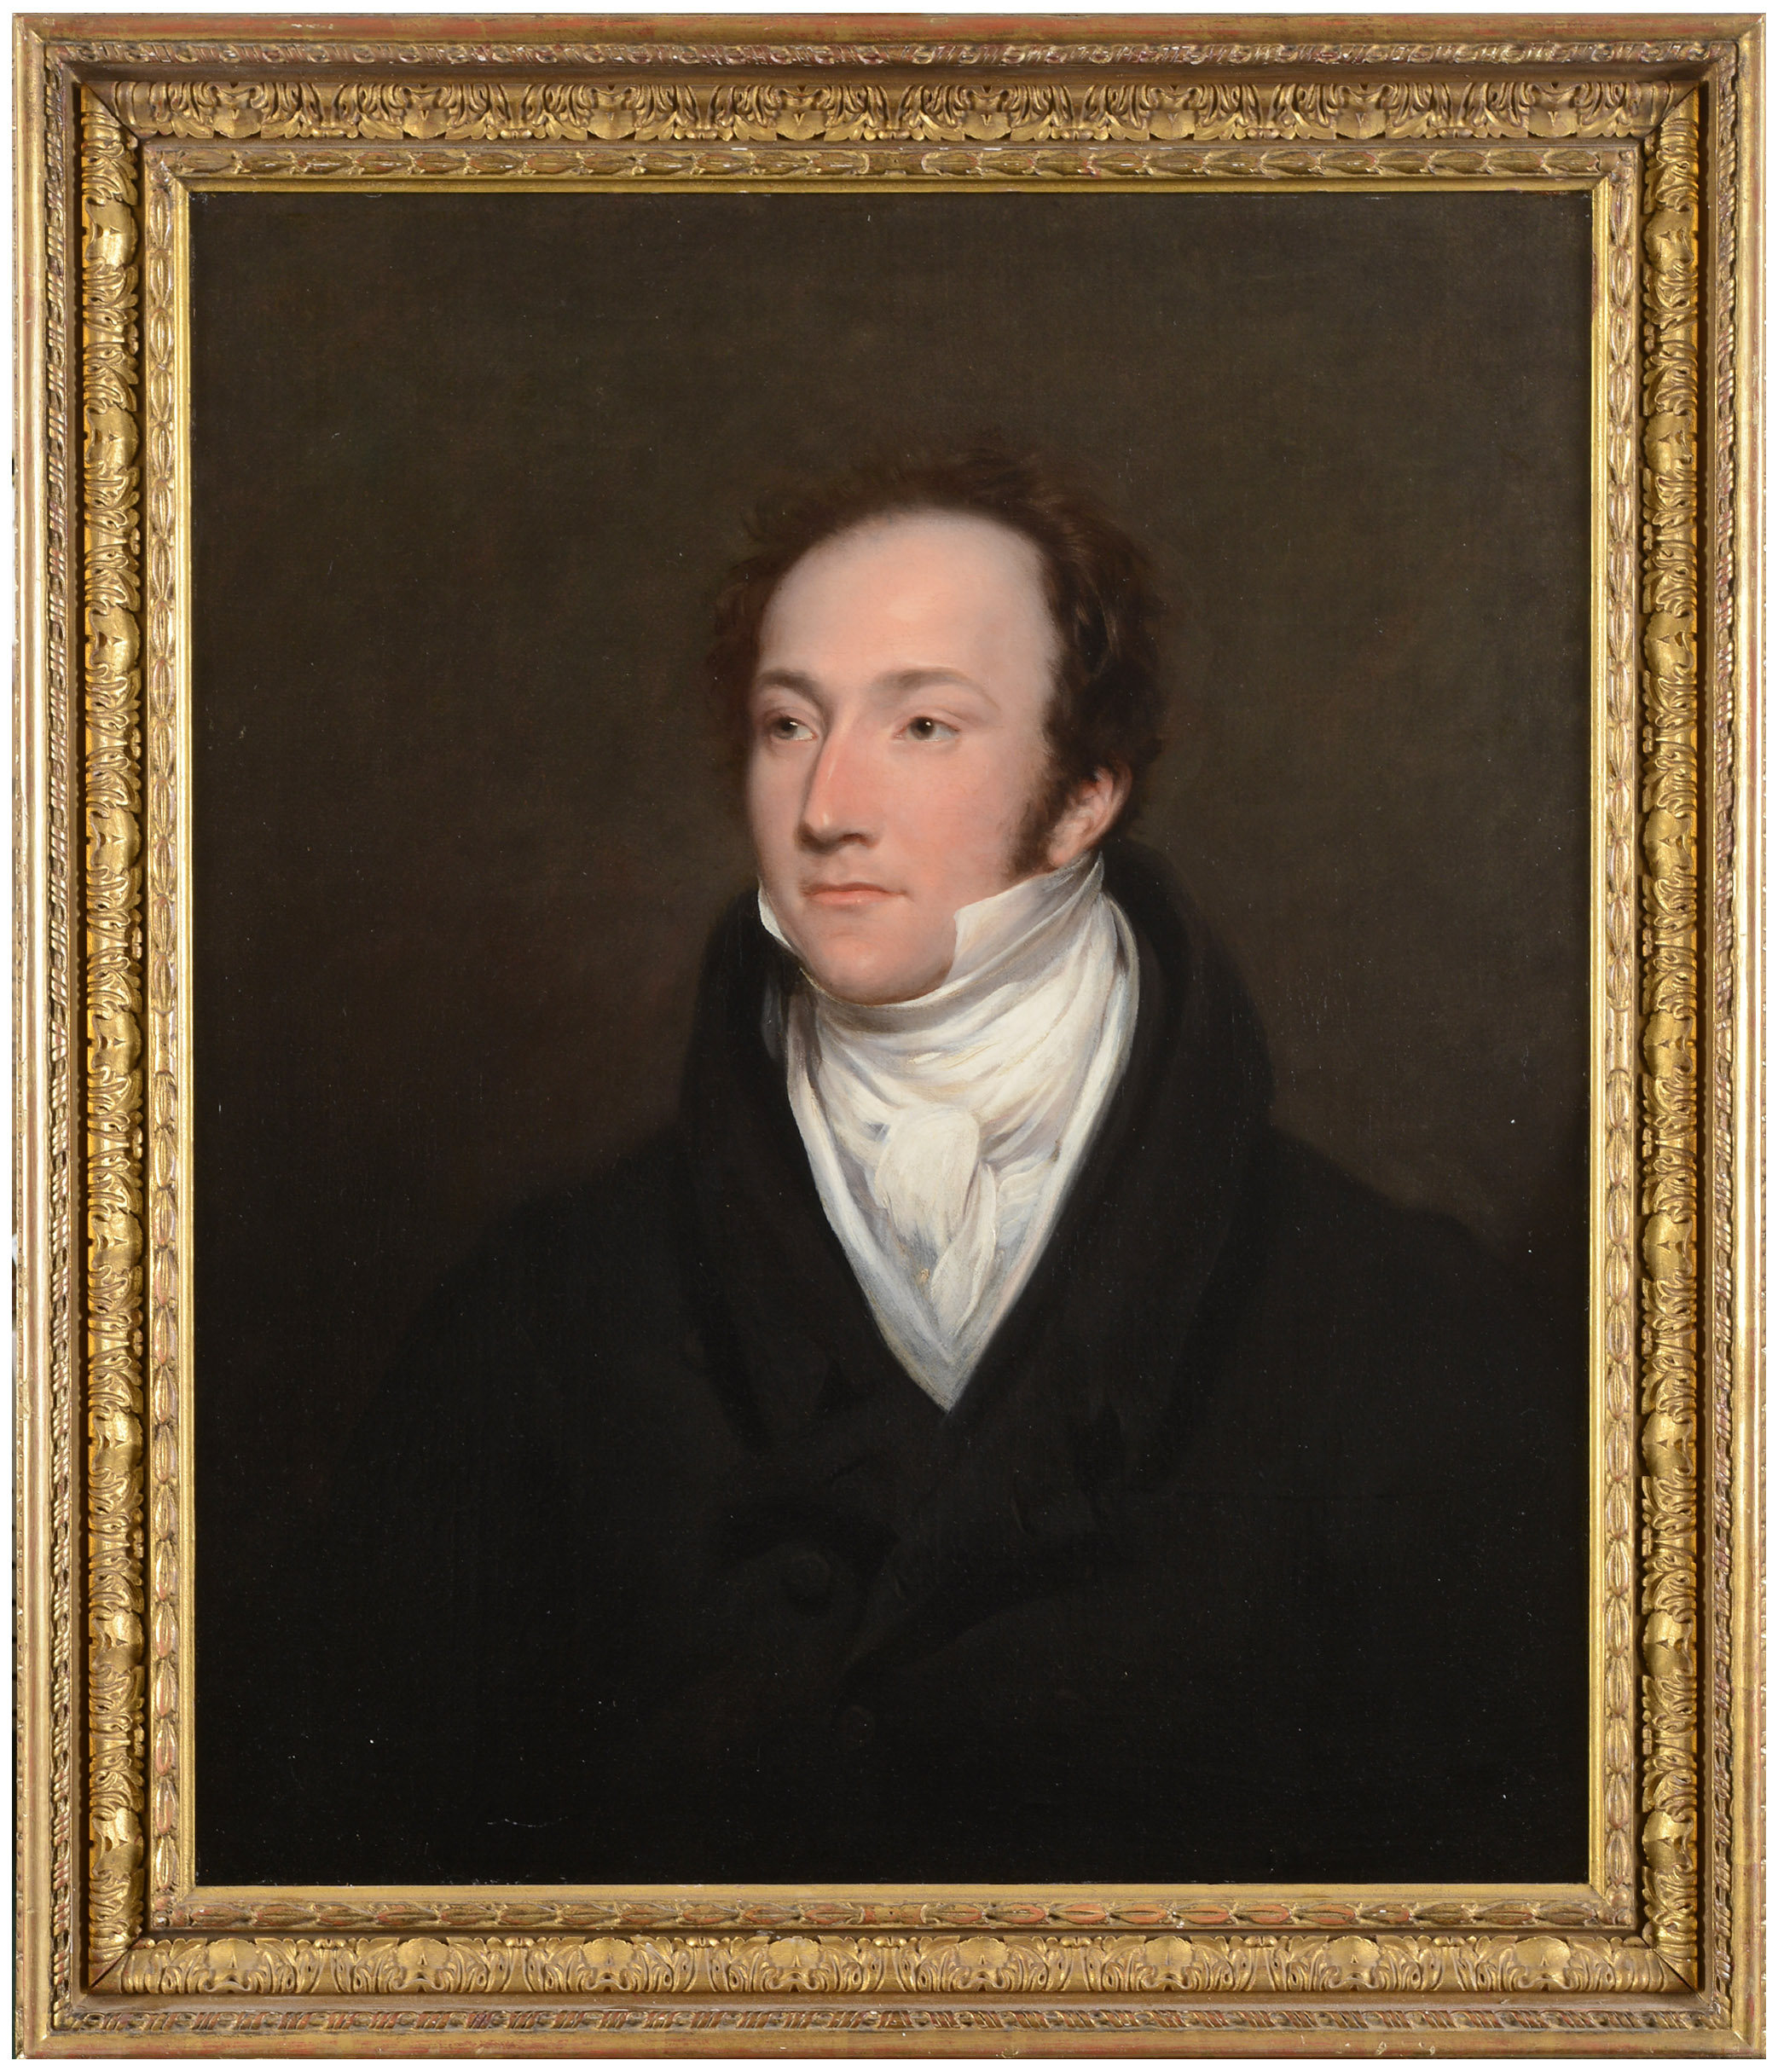 Lot 2185 - SIR THOMAS LAWRENCE, PRA (1769-1830) PORTRAIT OF A GENTLEMAN, BELIEVED TO BE PHILIP JOHN MILES,